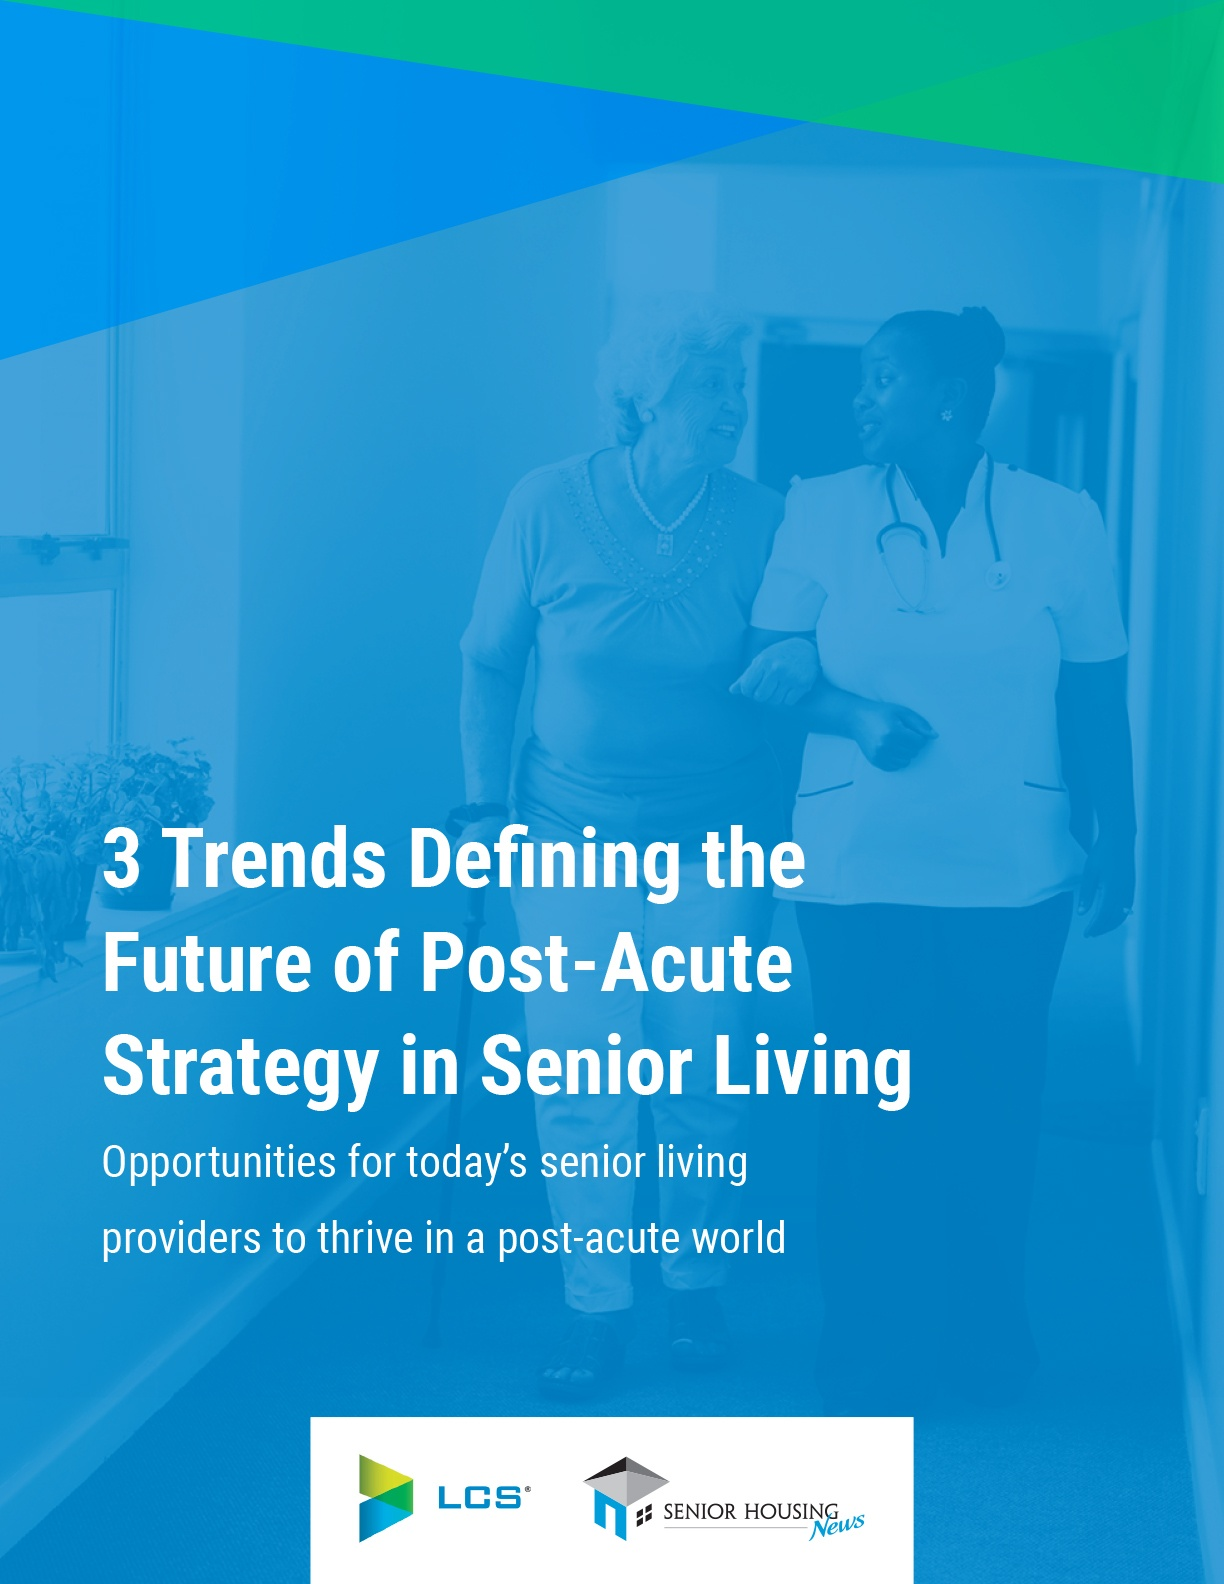 3 Trends Defining the Future of Post-Acute Strategy in Senior Living